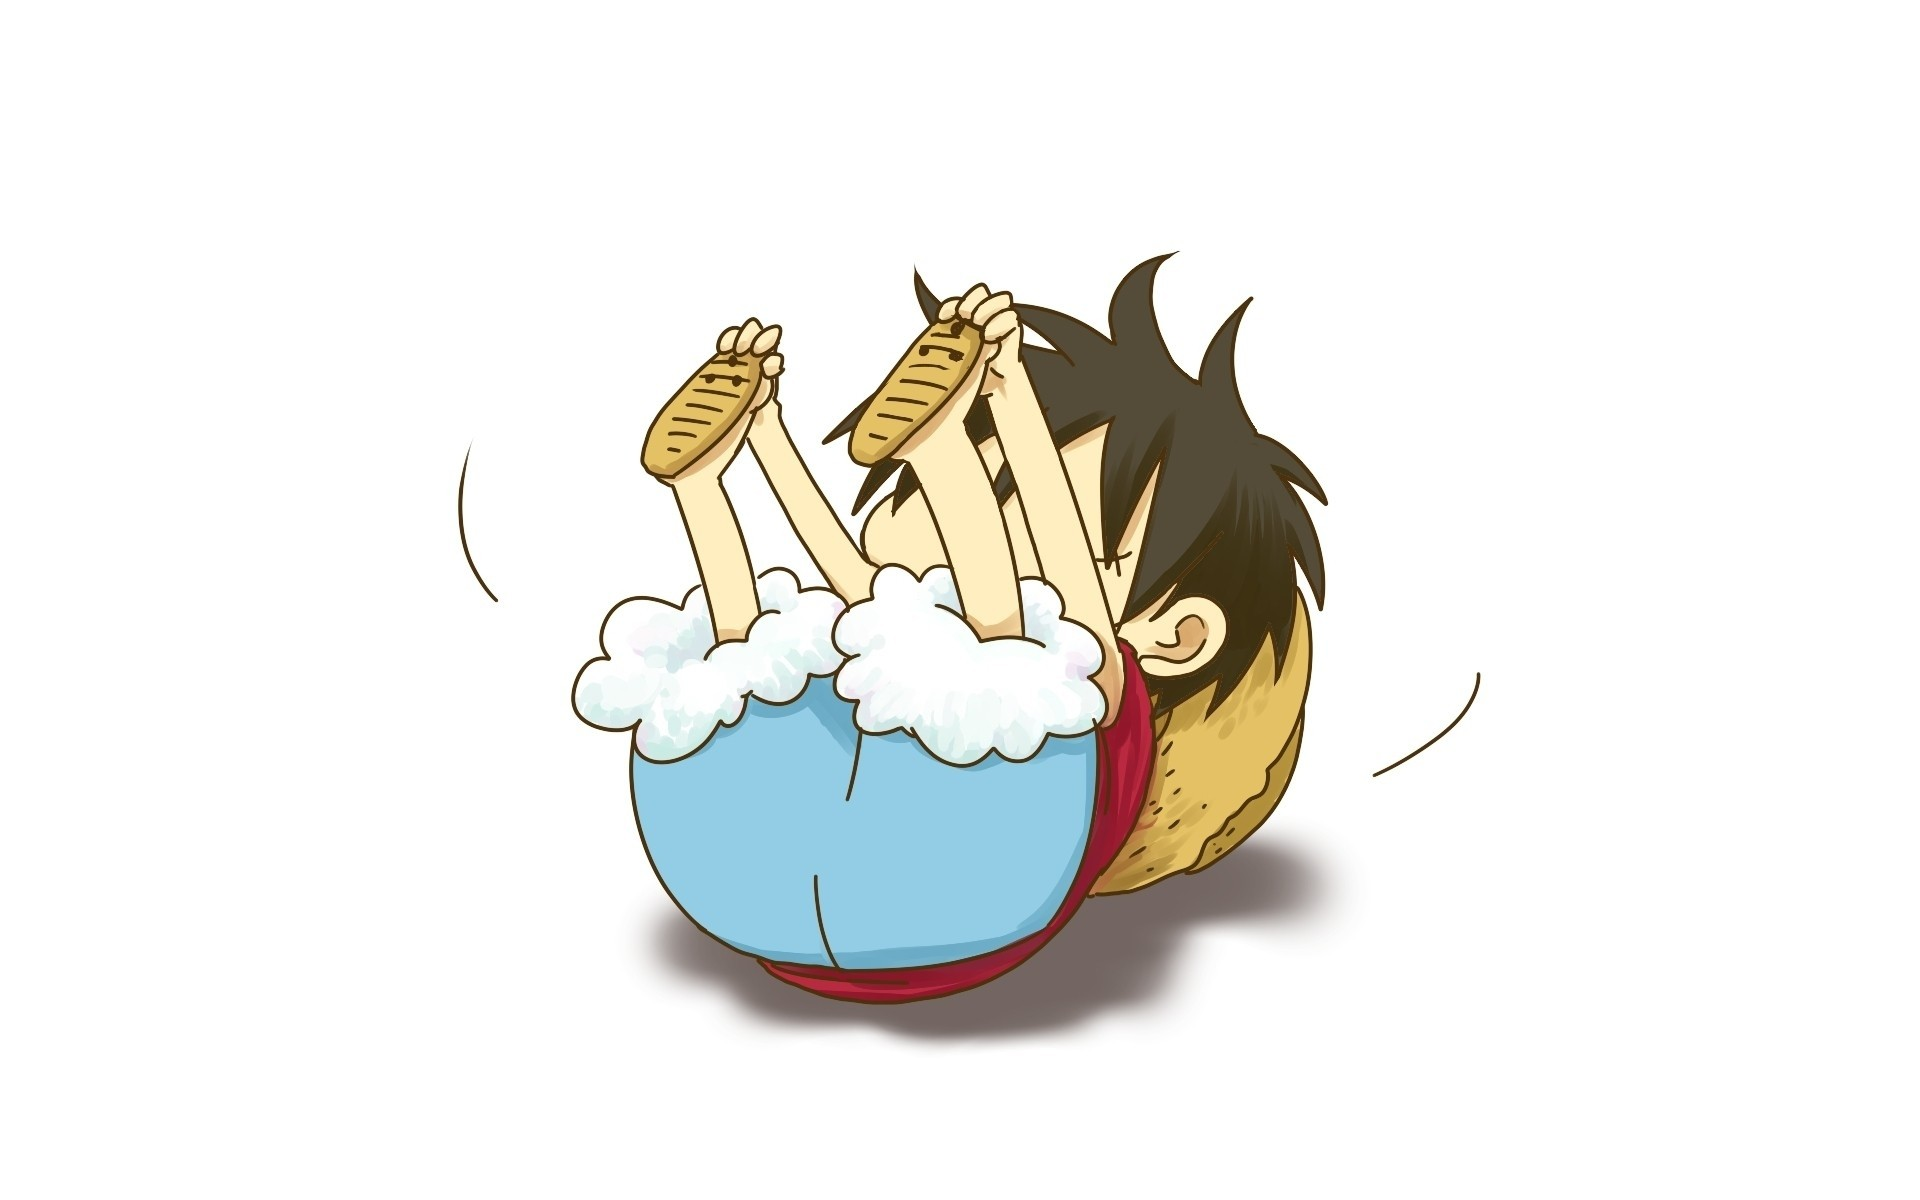 Res: 1920x1200, One piece anime chibi simple background white background monkey d luffy  Wallpaper